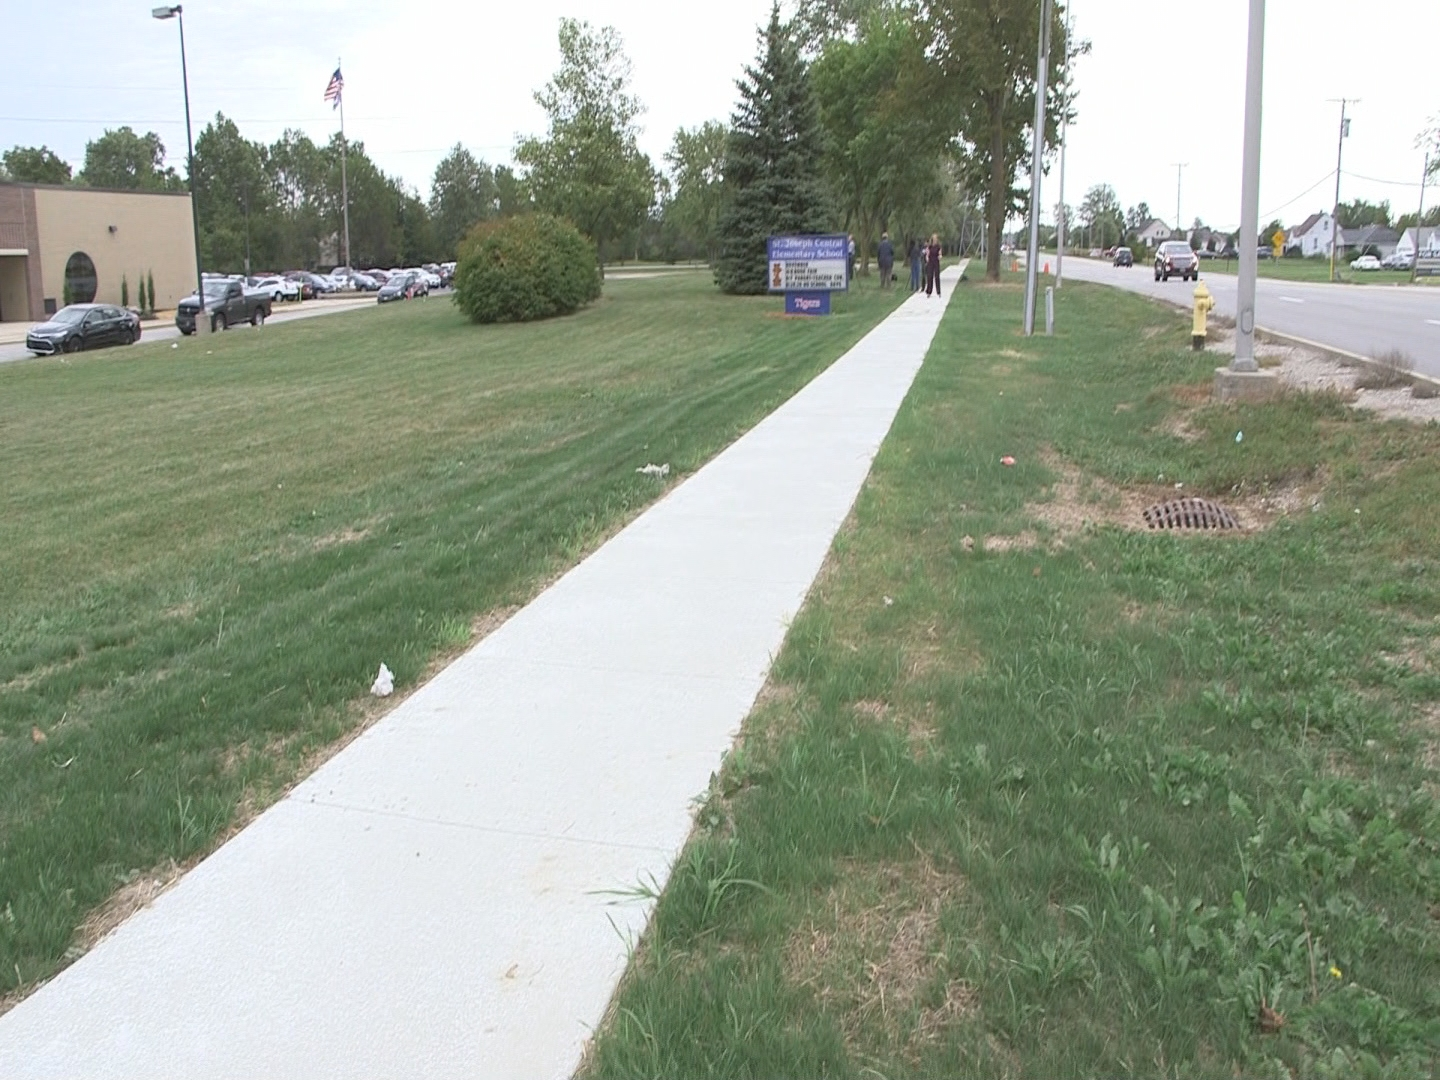 DIGGING DEEPER: We're seeing results 'where the sidewalk ends'